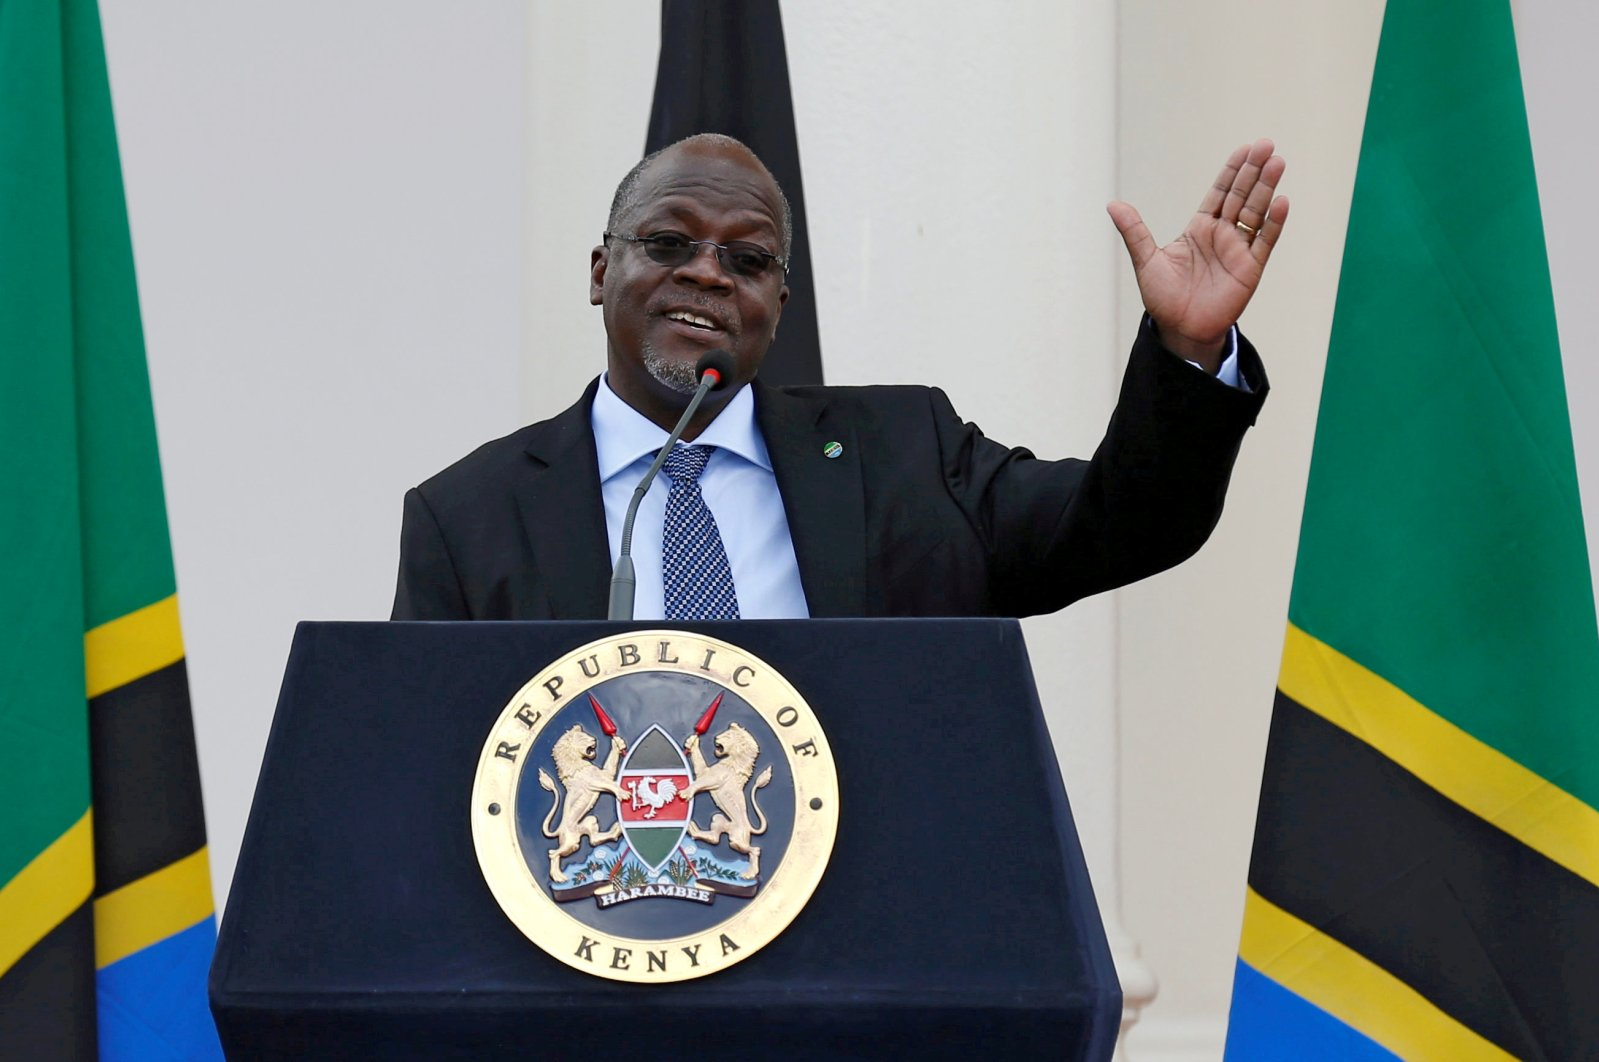 Tanzania's President John Magufuli addresses a news conference during his official visit to Nairobi, Kenya, Oct. 31, 2016. (Reuters File Photo)